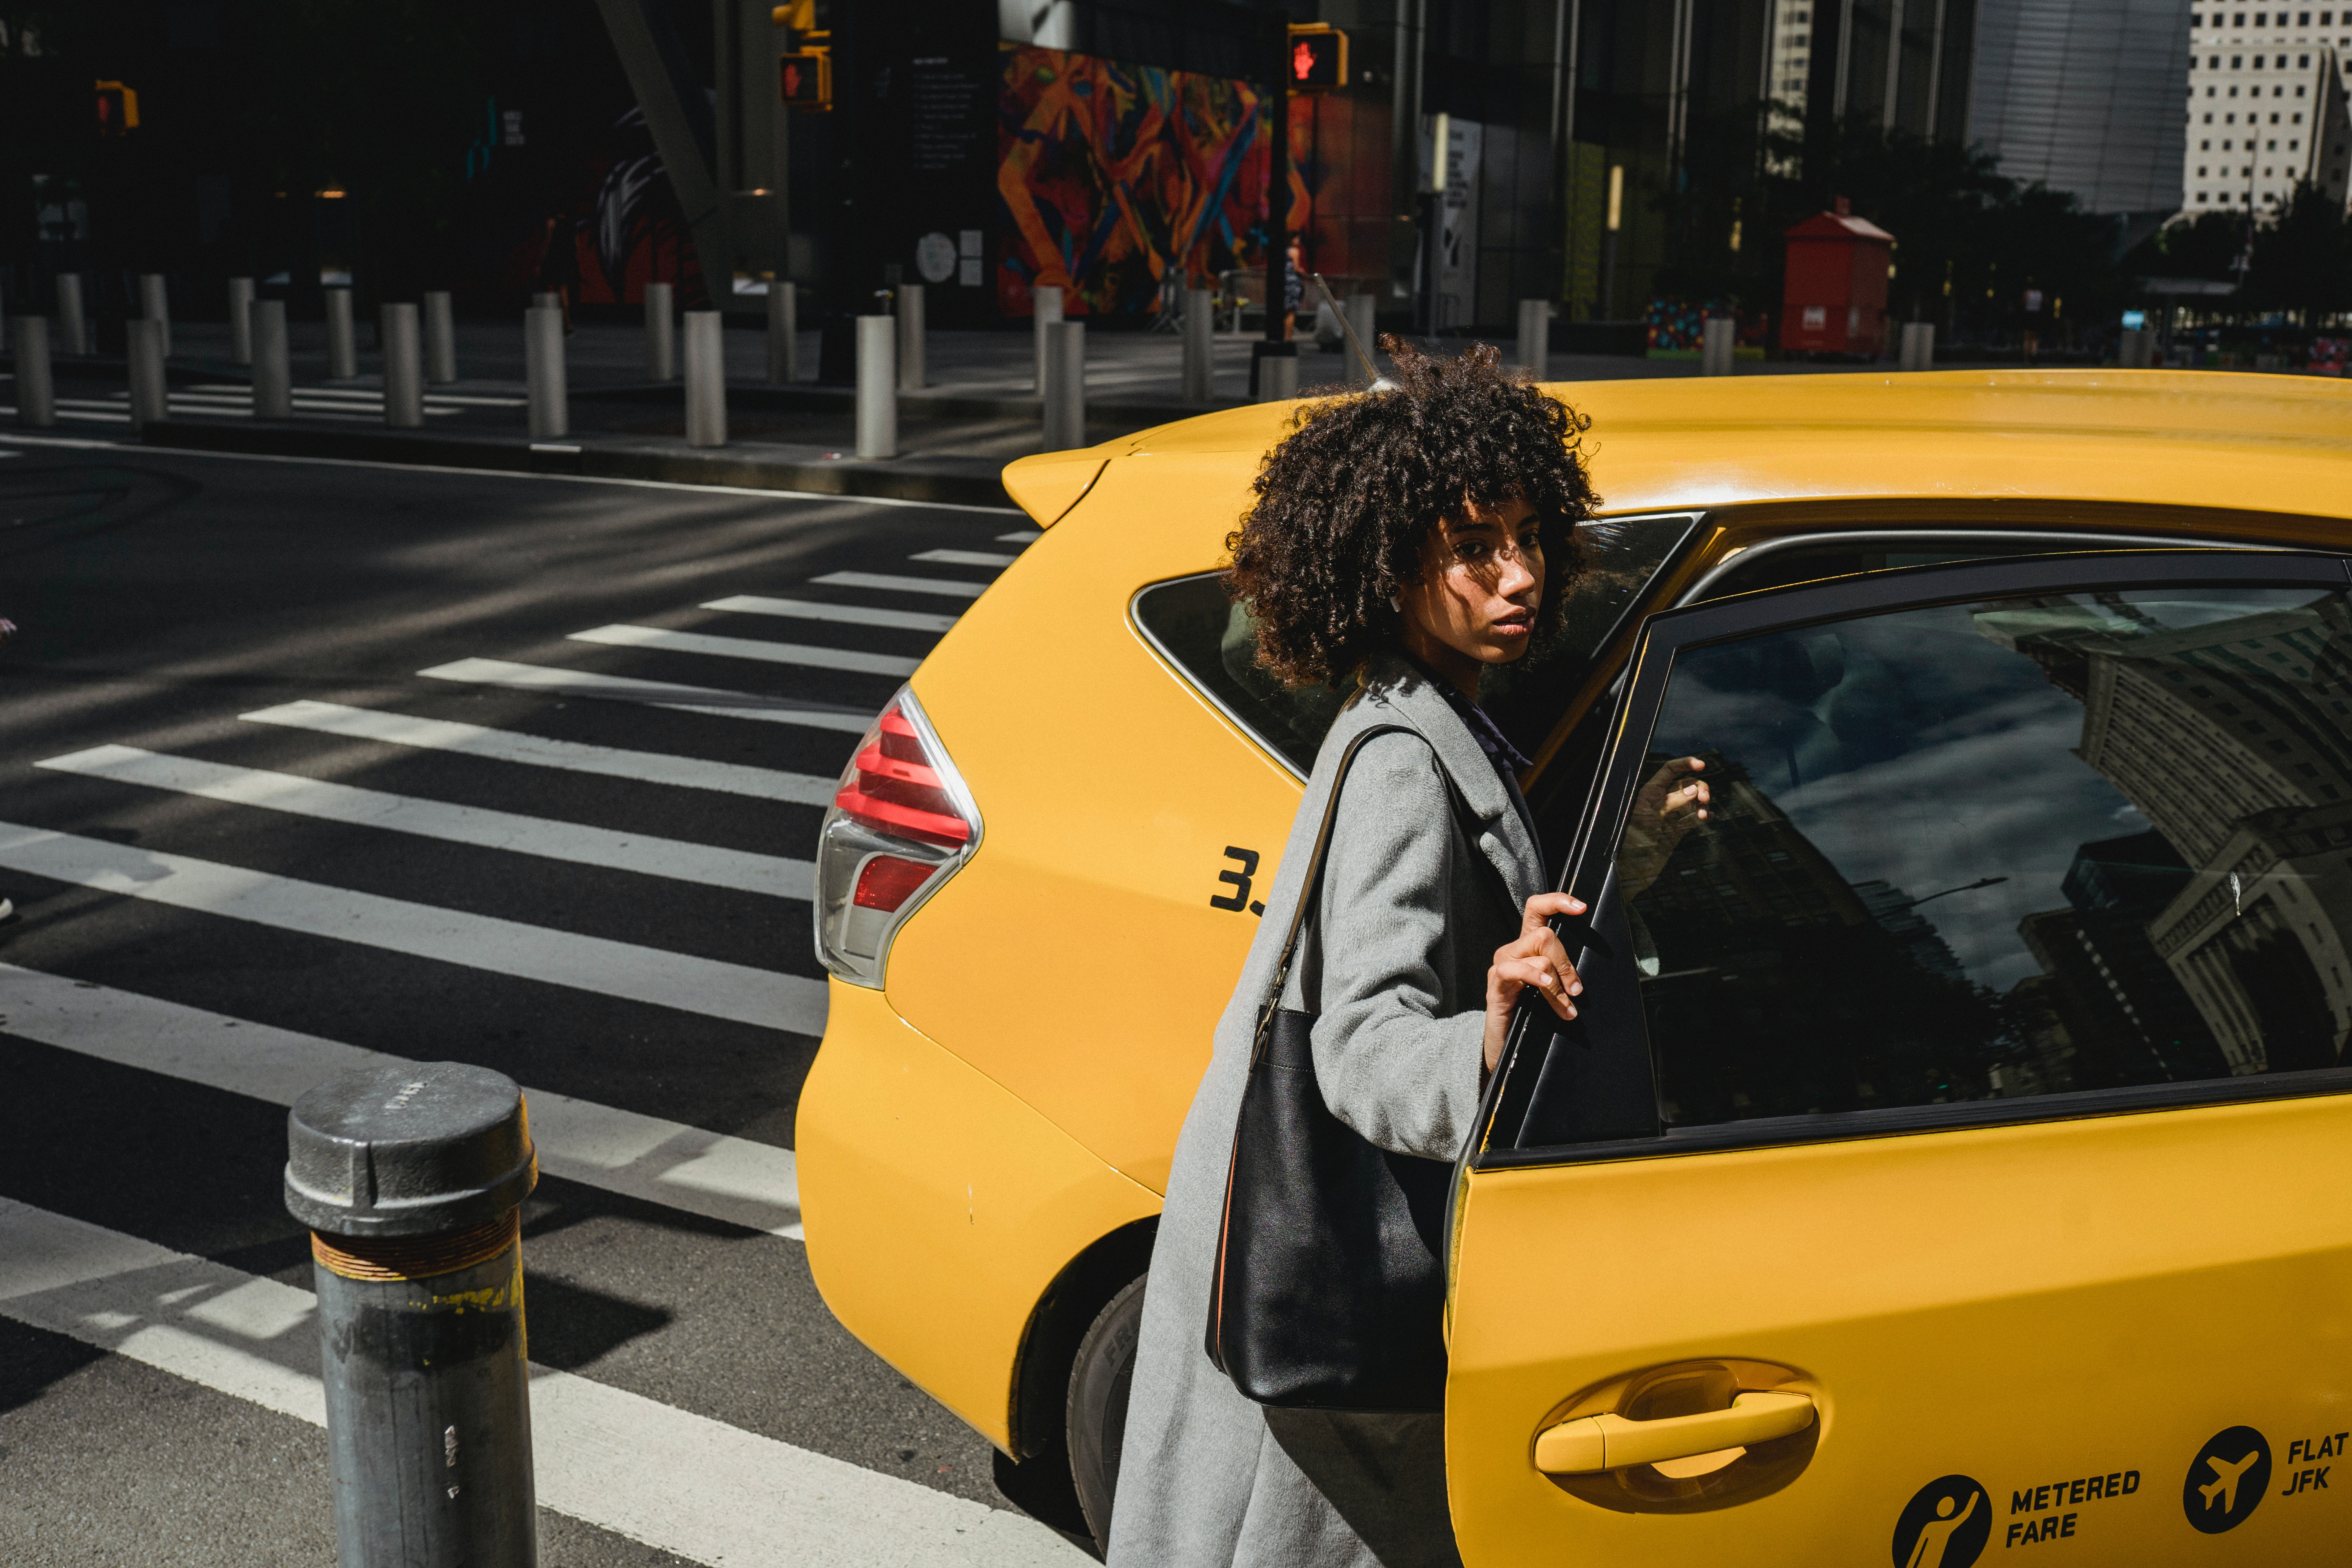 Taxi Company with Contracts & solid Cashflow